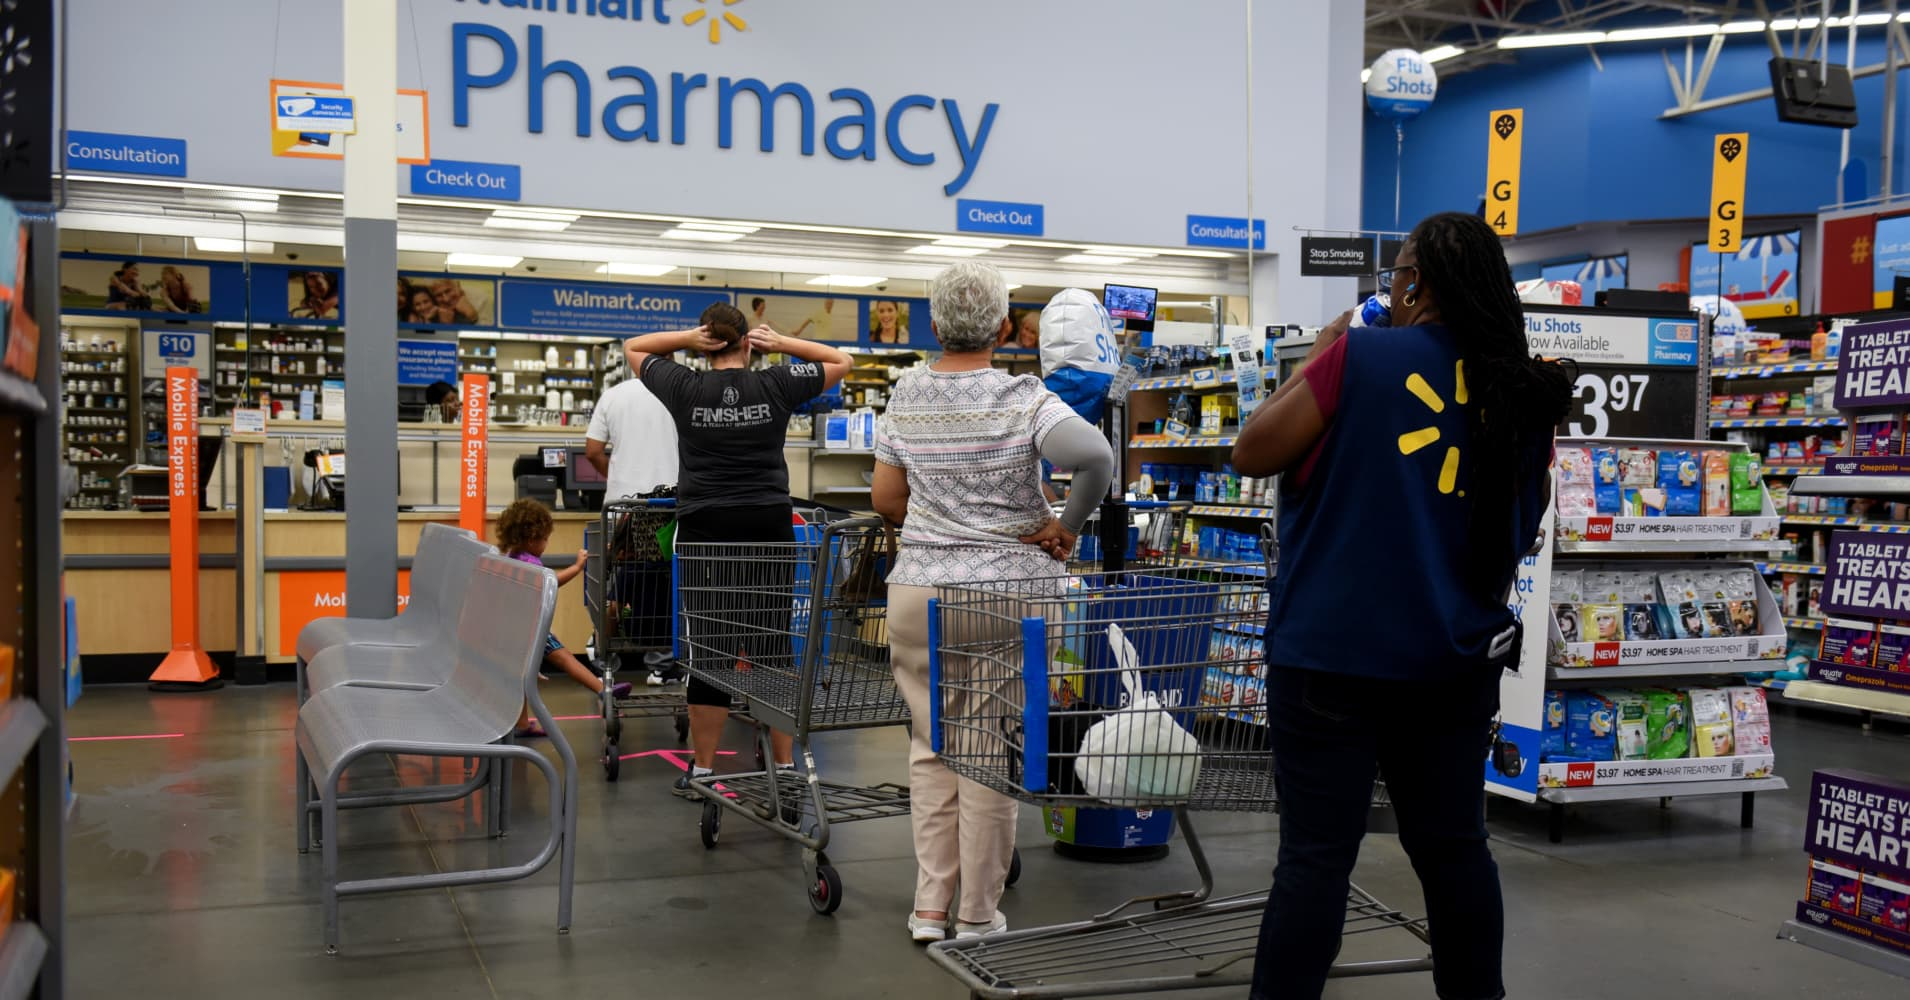 Walmart sends employees to top hospitals out of state for treatment